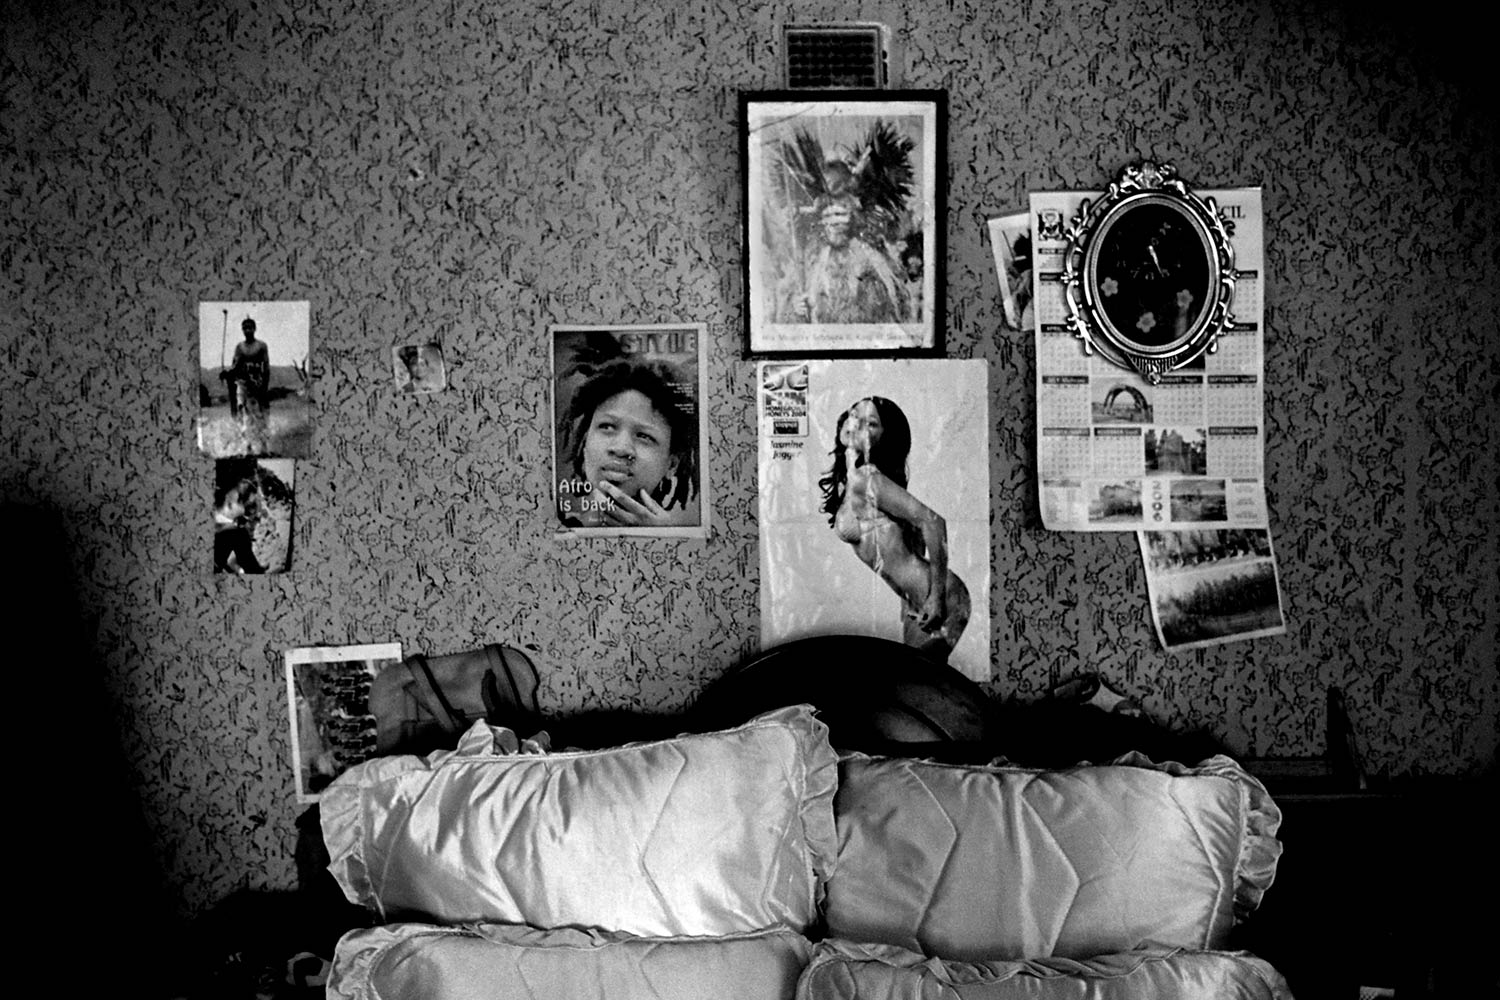 Decorations hang on the wall behind a young girl's bed that she shares with her mother in a one-room home.